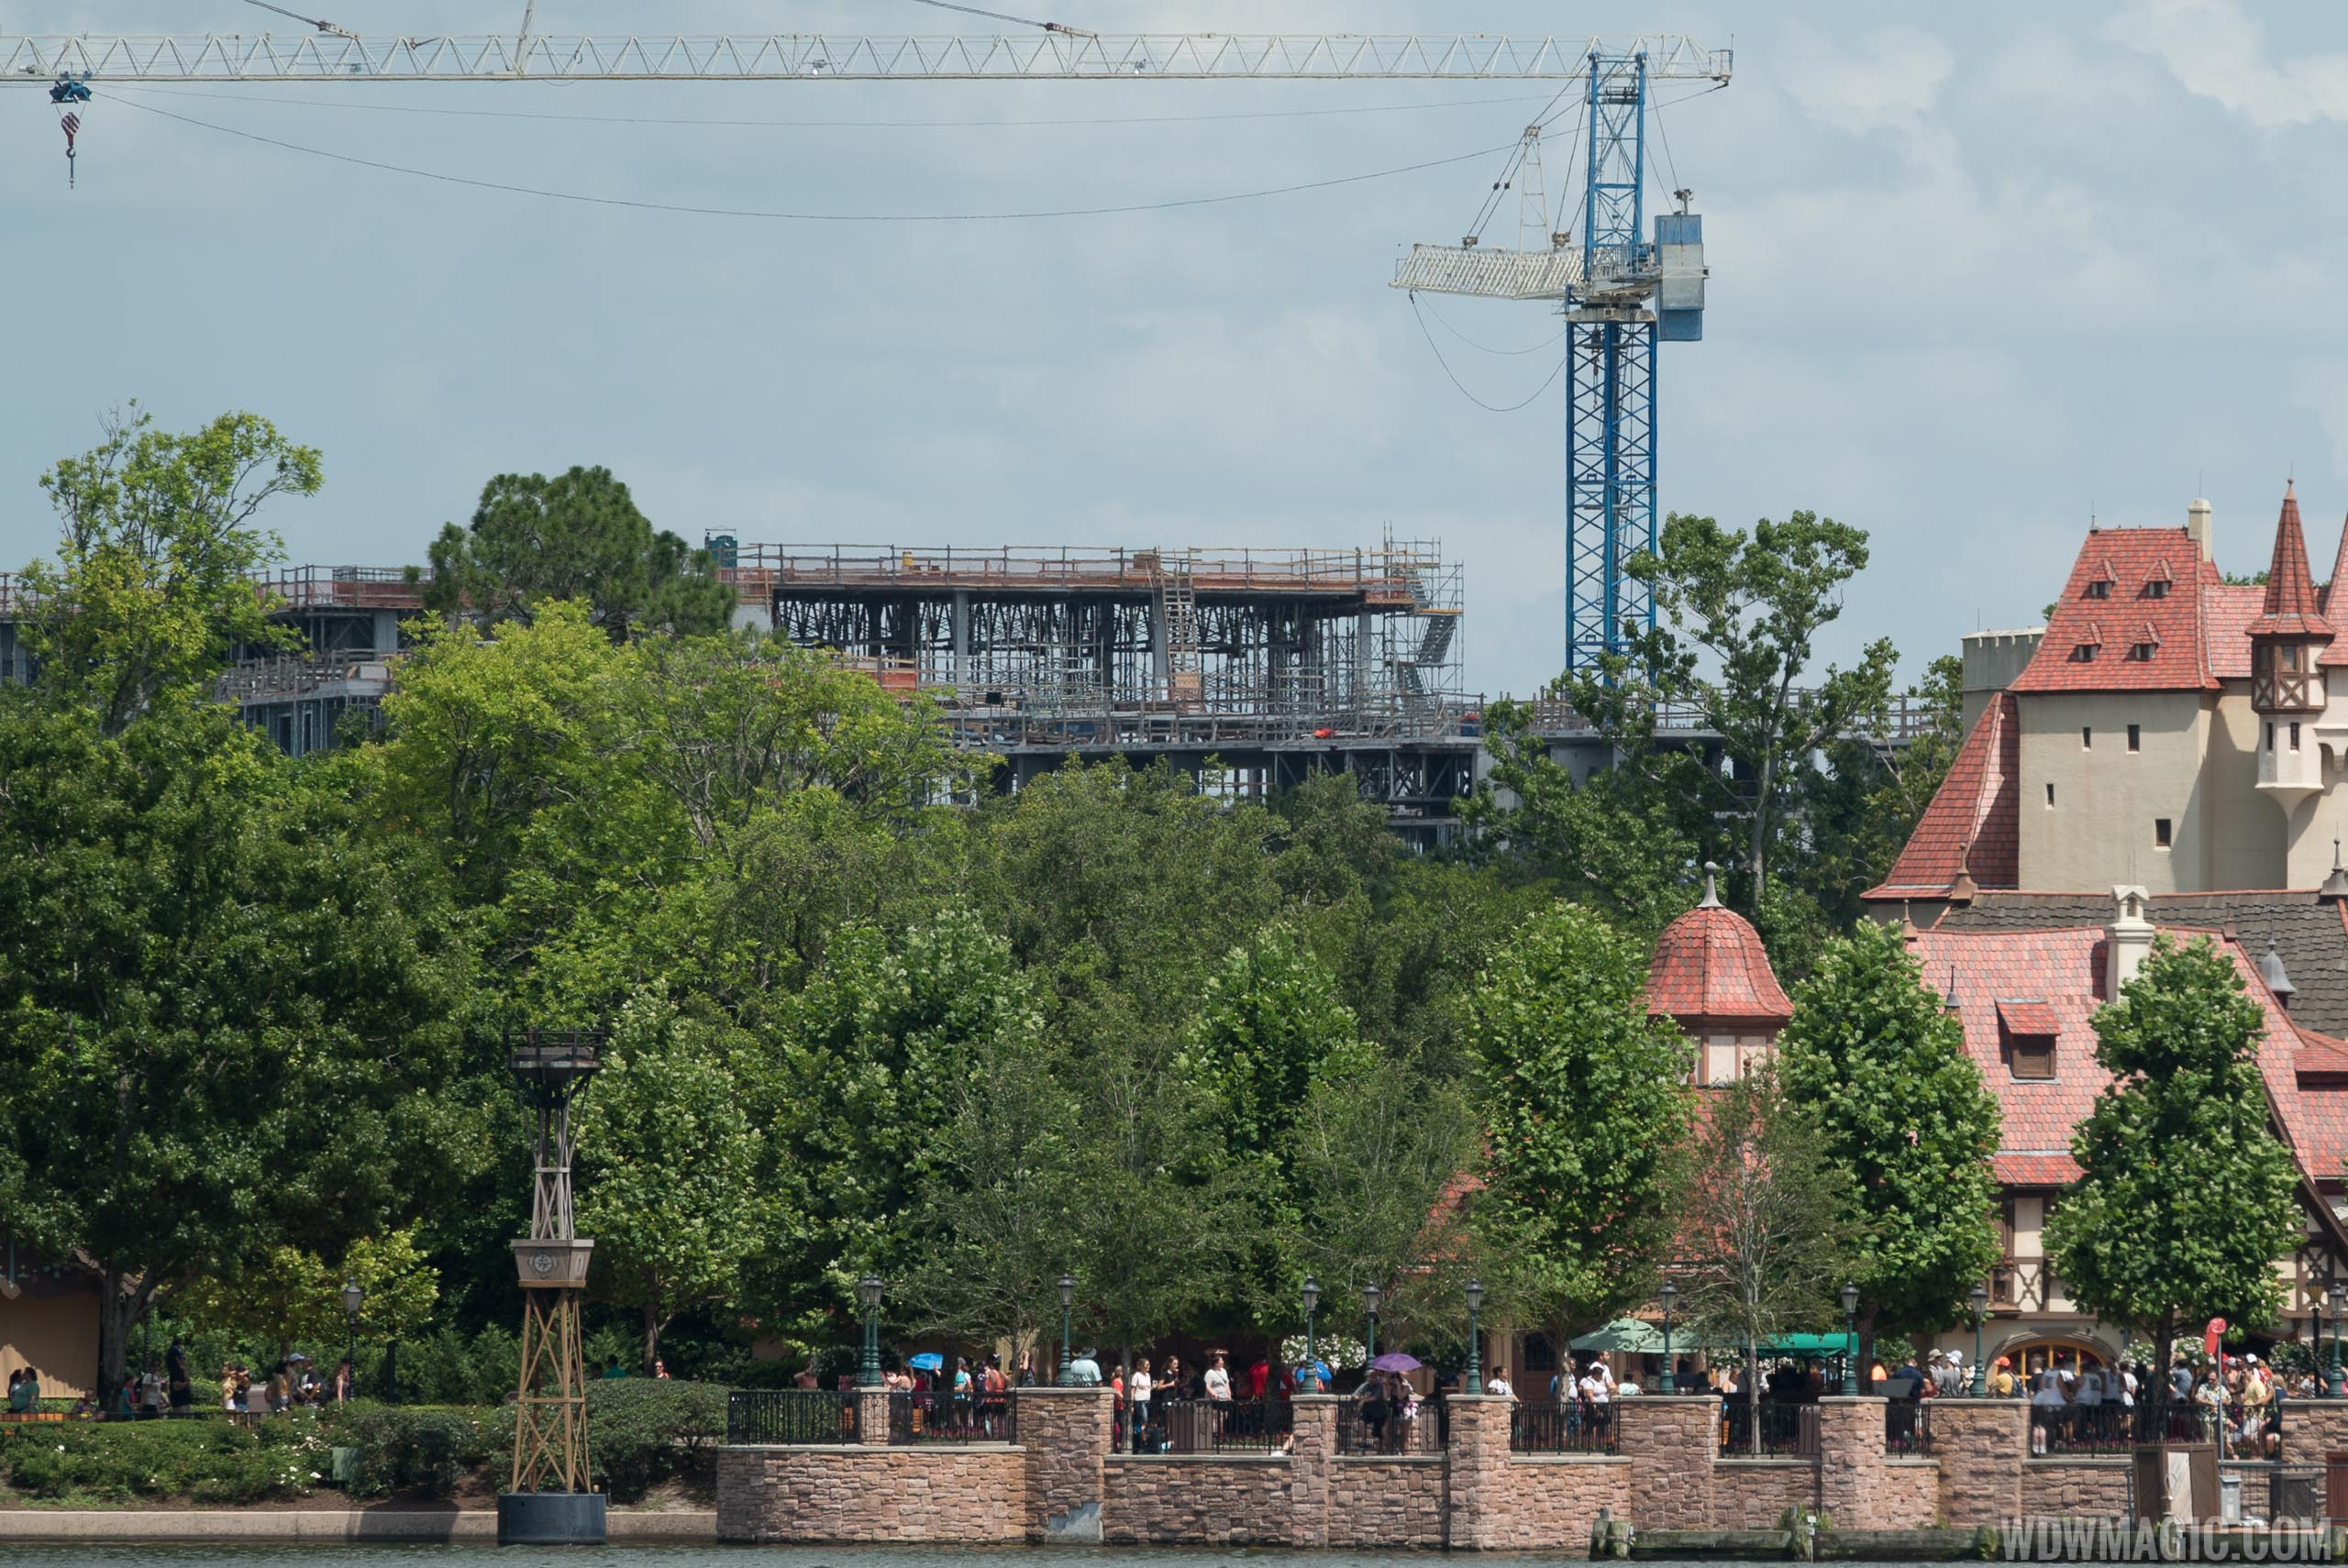 Disney Riviera construction from inside Epcot